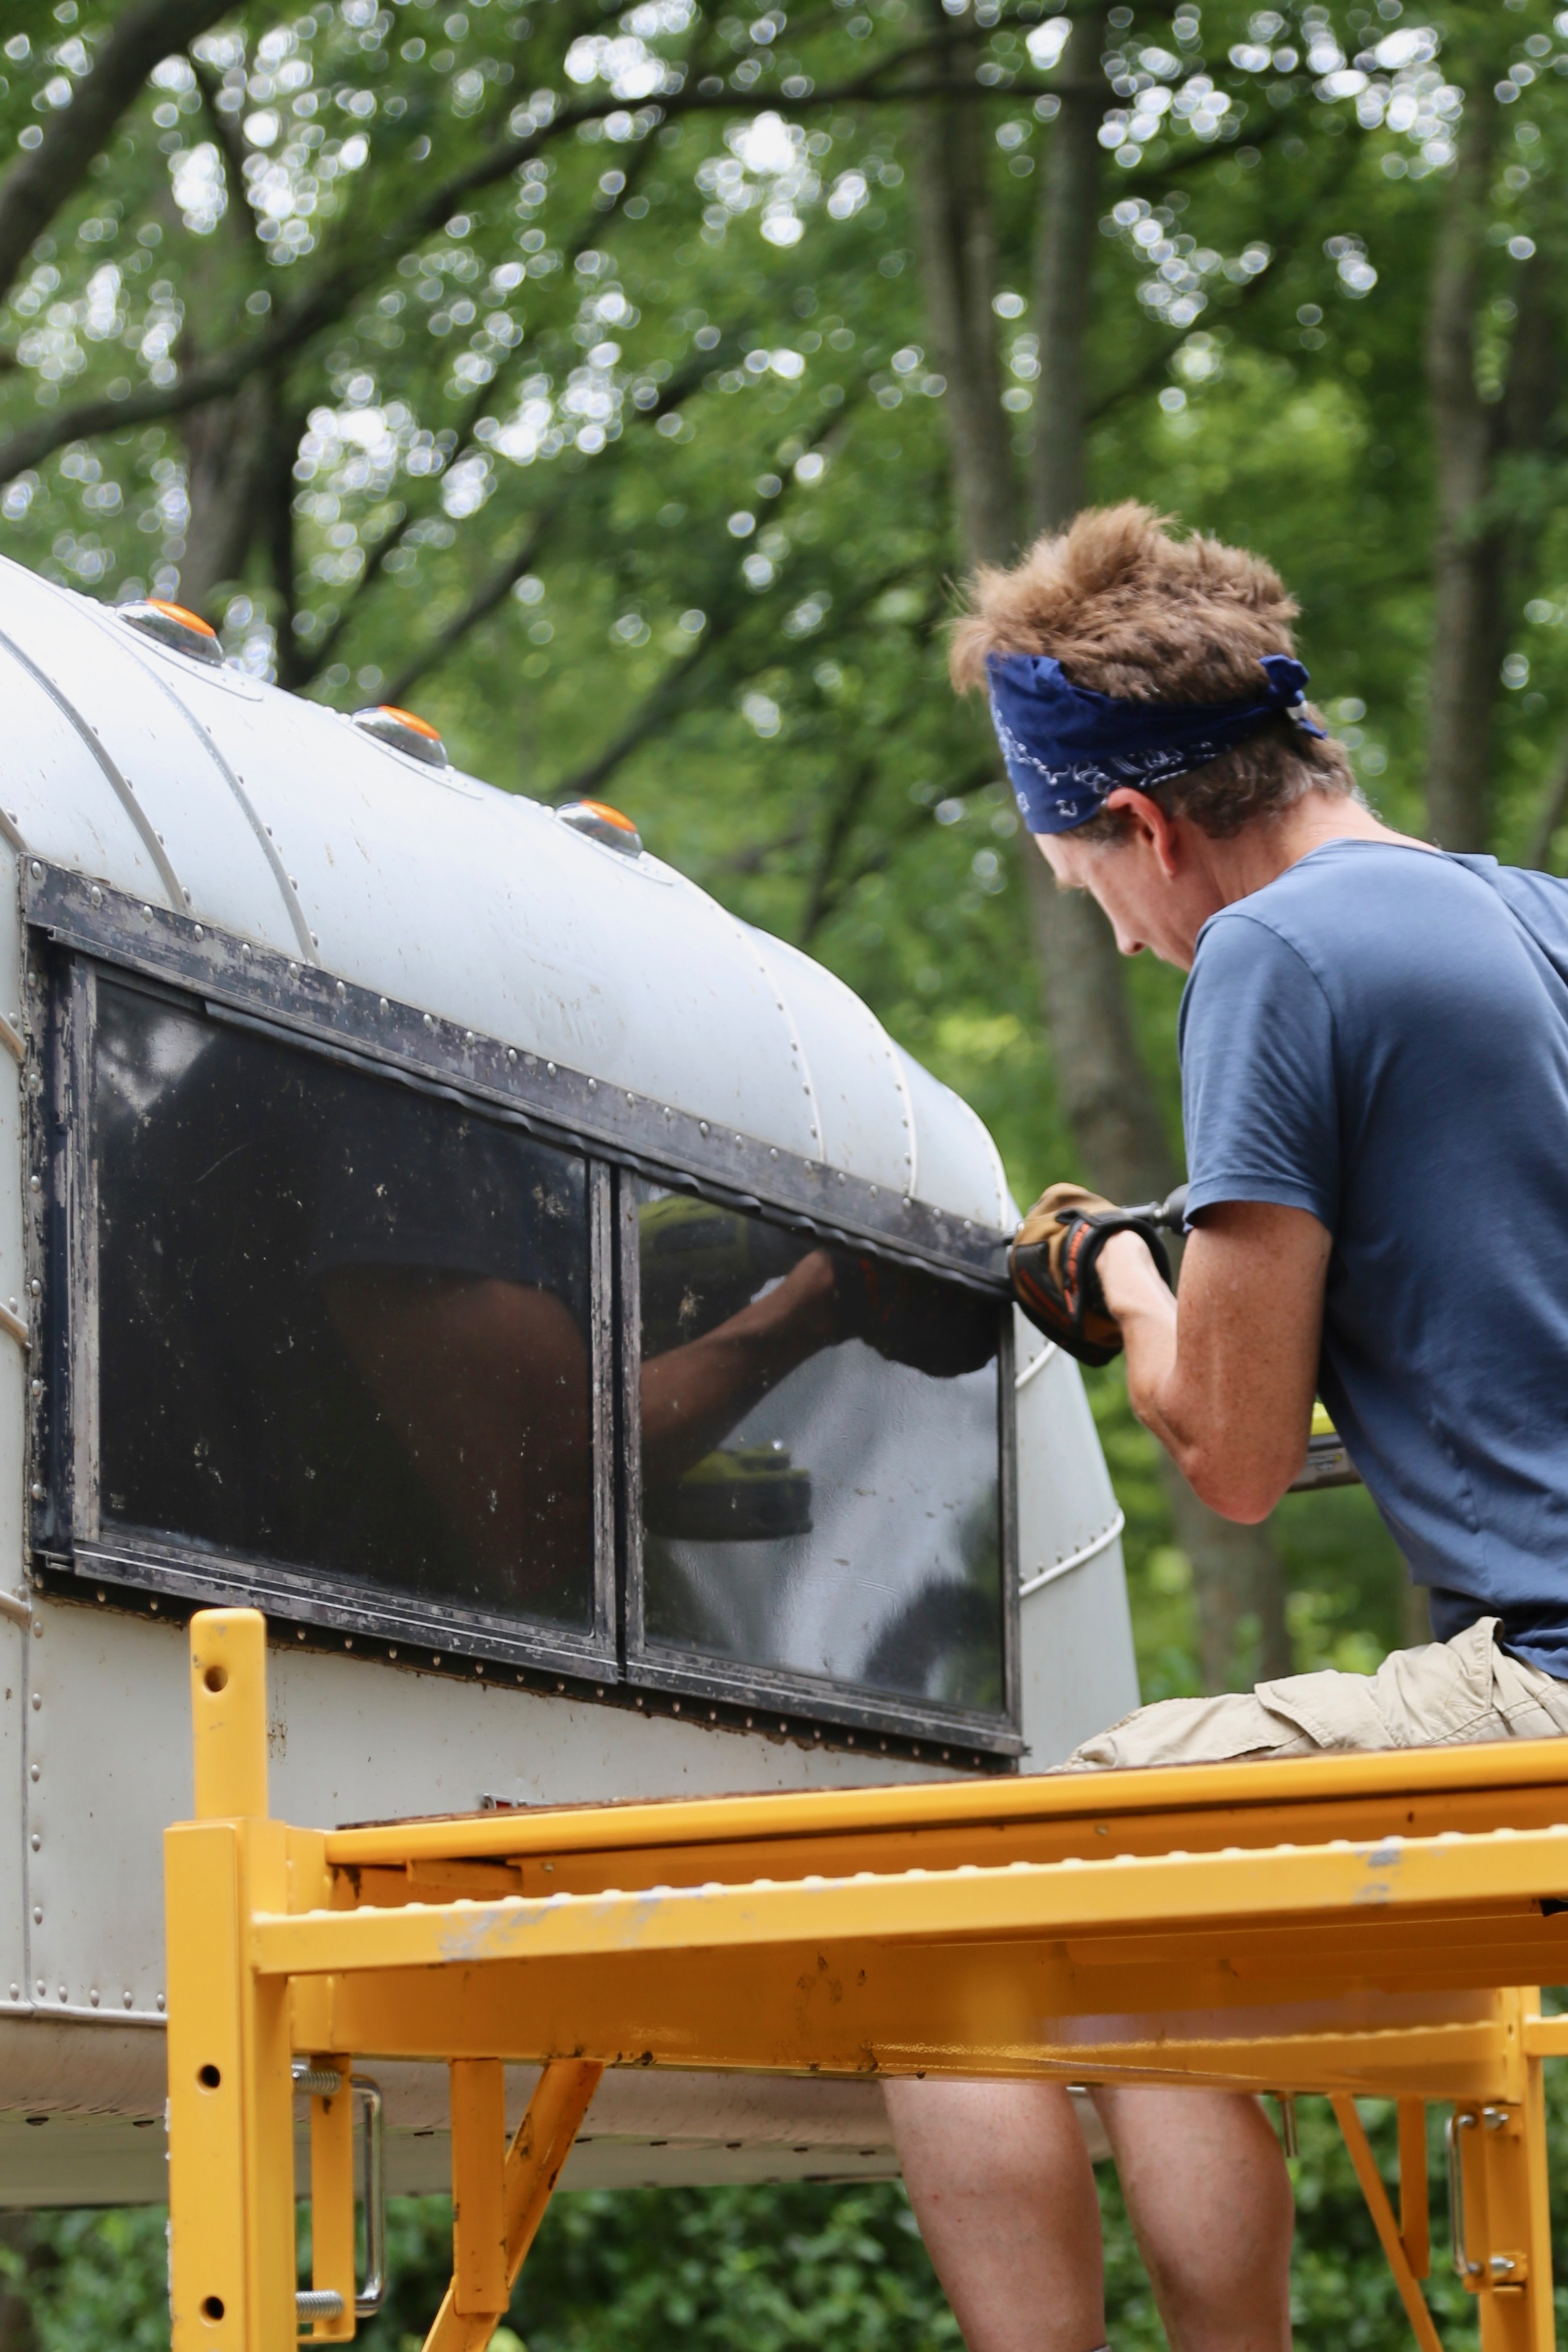 Step-by-step DIY replacing of a leaky vintage truck camper cabover window by installing a new, double paned, aerodynamic, and modern RV window.